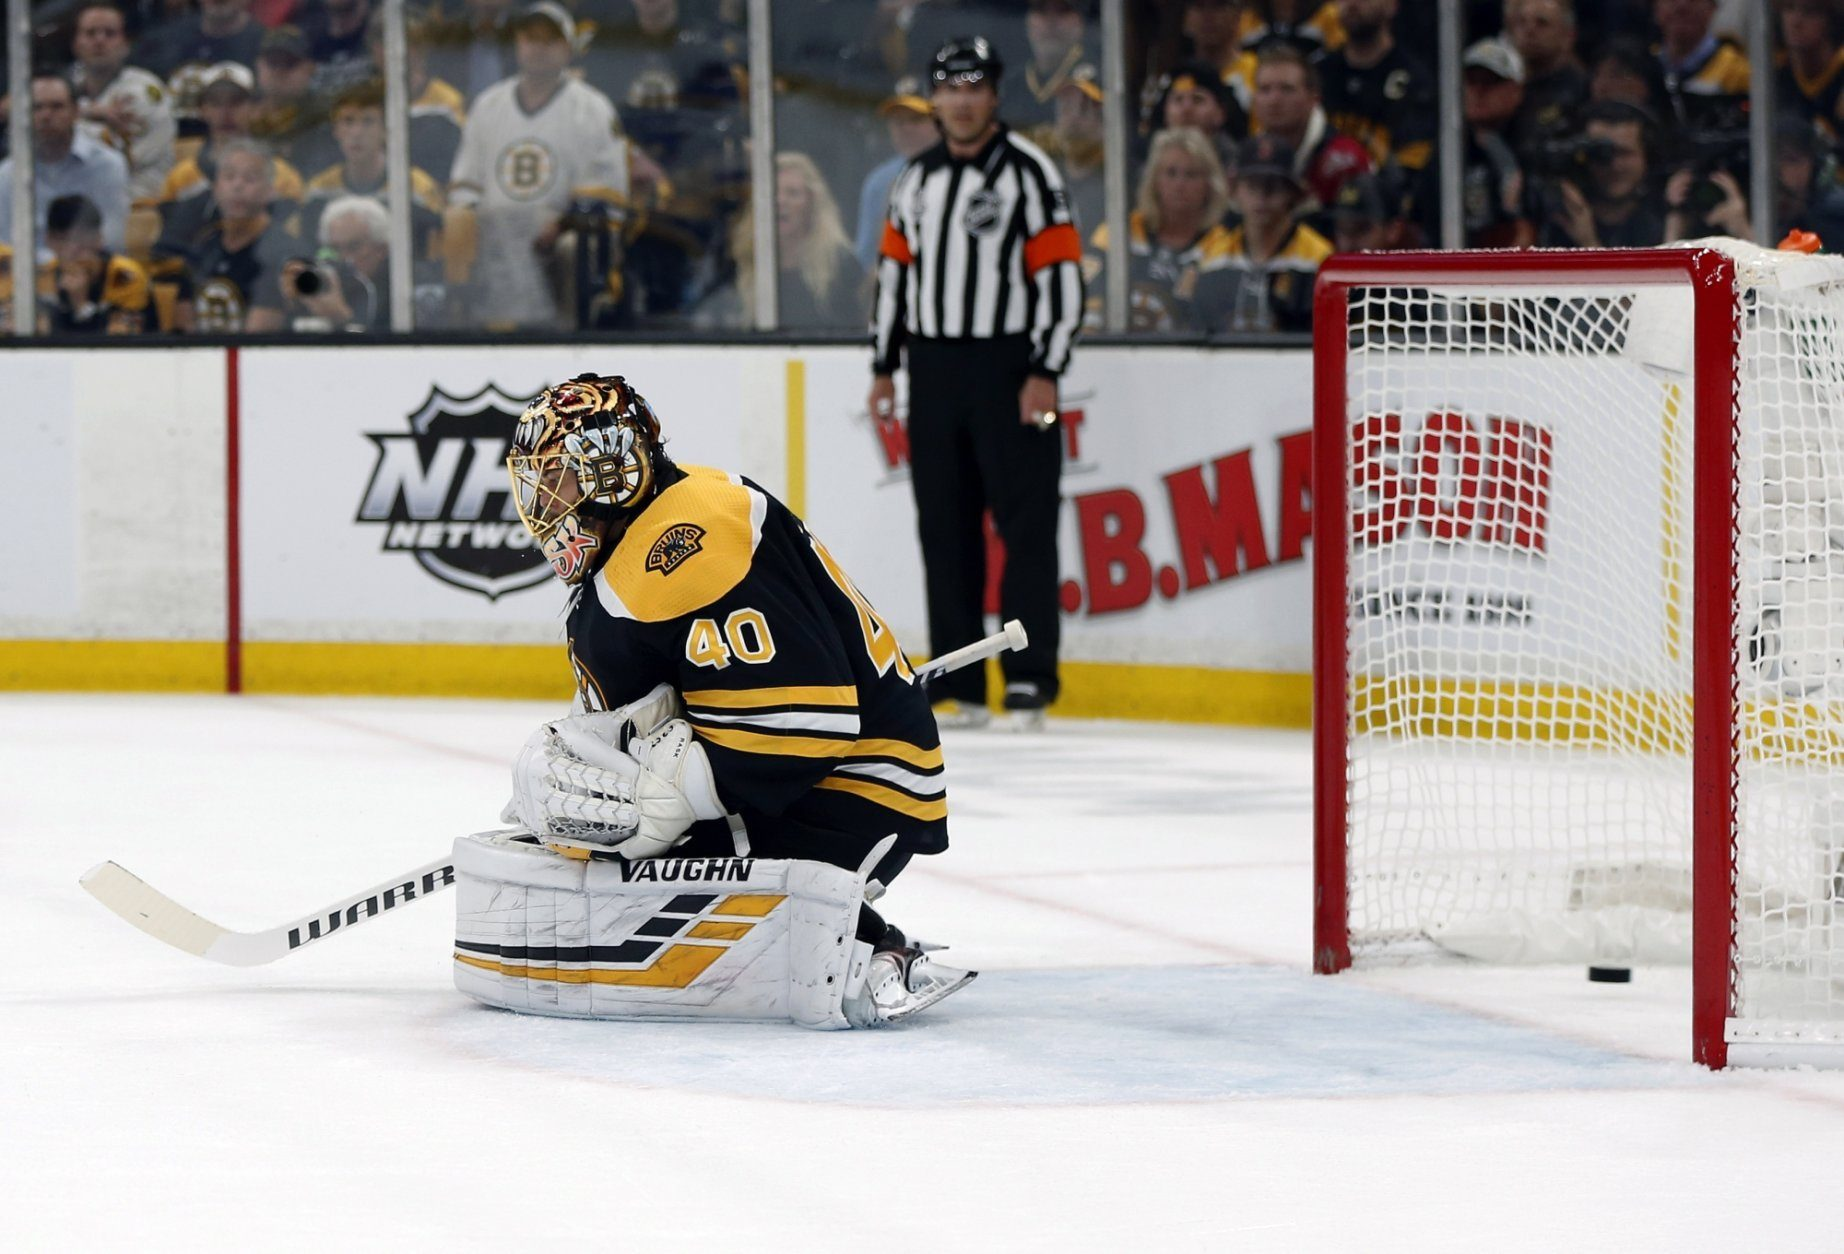 A shot by St. Louis Blues' Ryan O'Reilly settles in the net behind Boston Bruins goaltender Tuukka Rask, of Finland, for the first goal during the first period in Game 7 of the NHL hockey Stanley Cup Final, Wednesday, June 12, 2019, in Boston. (AP Photo/Michael Dwyer)